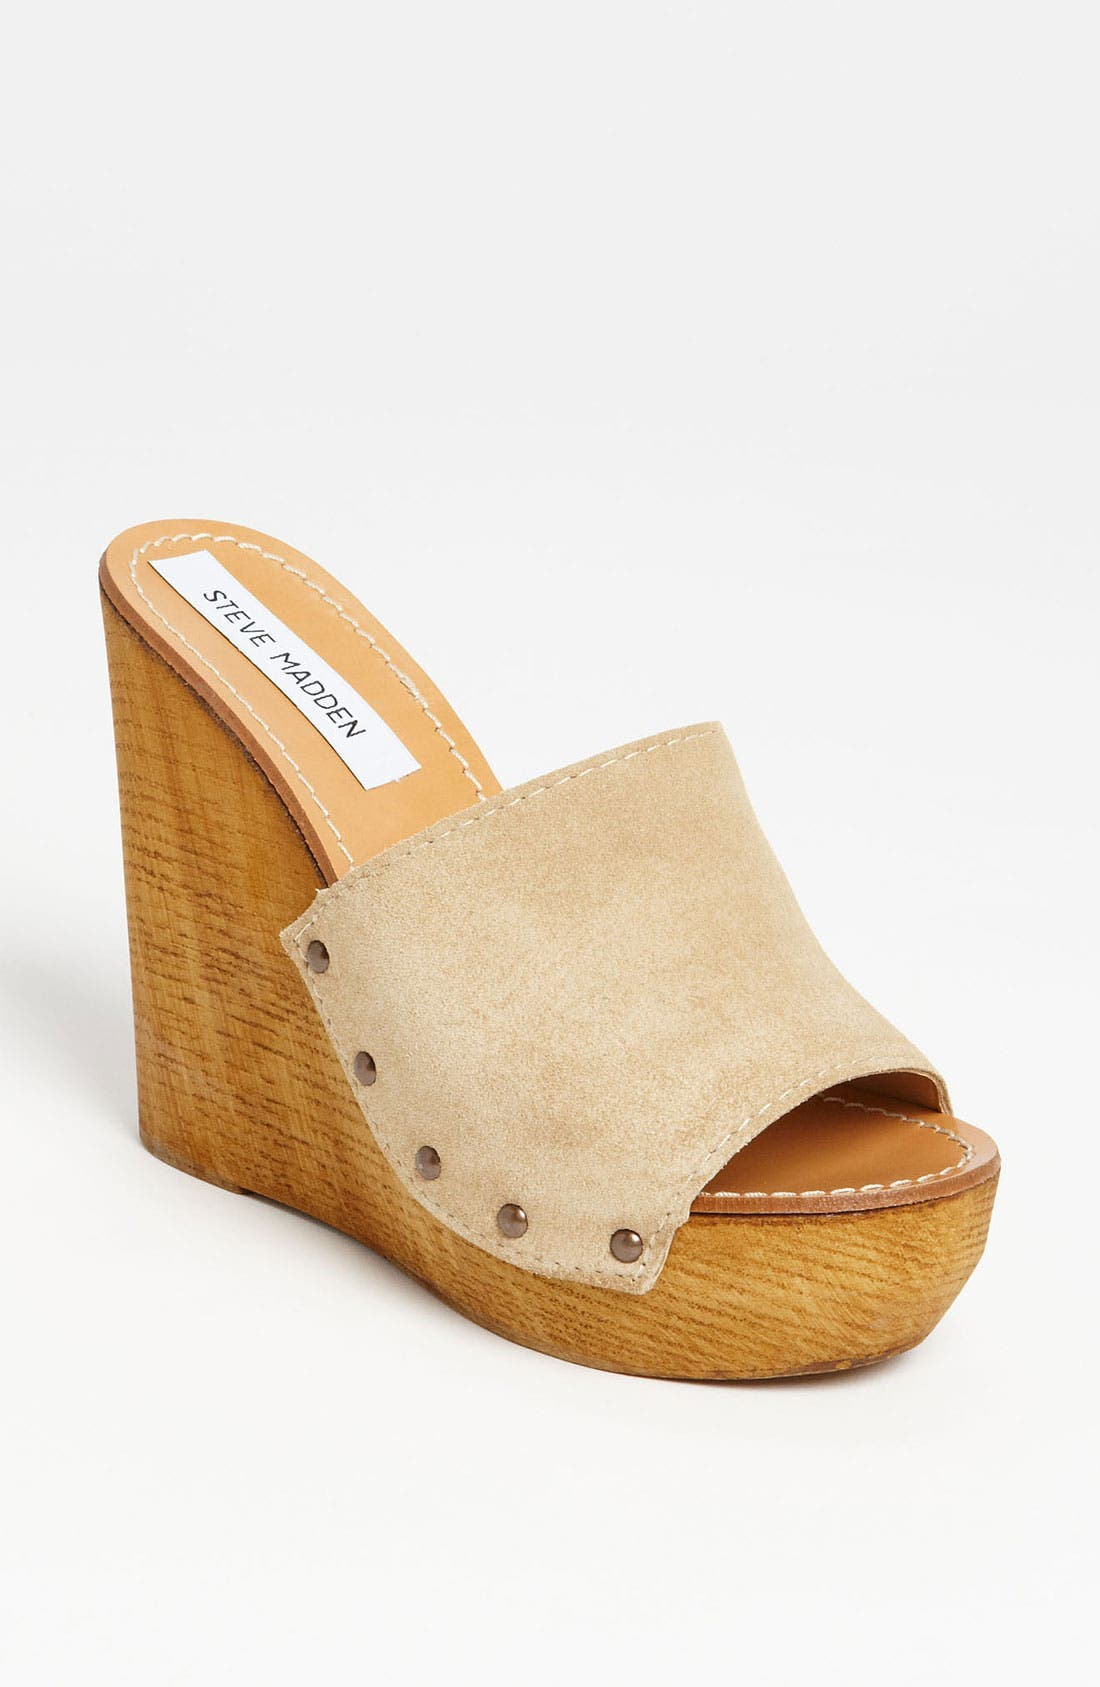 Alternate Image 1 Selected - Steve Madden 'Cedar' Wedge Sandal